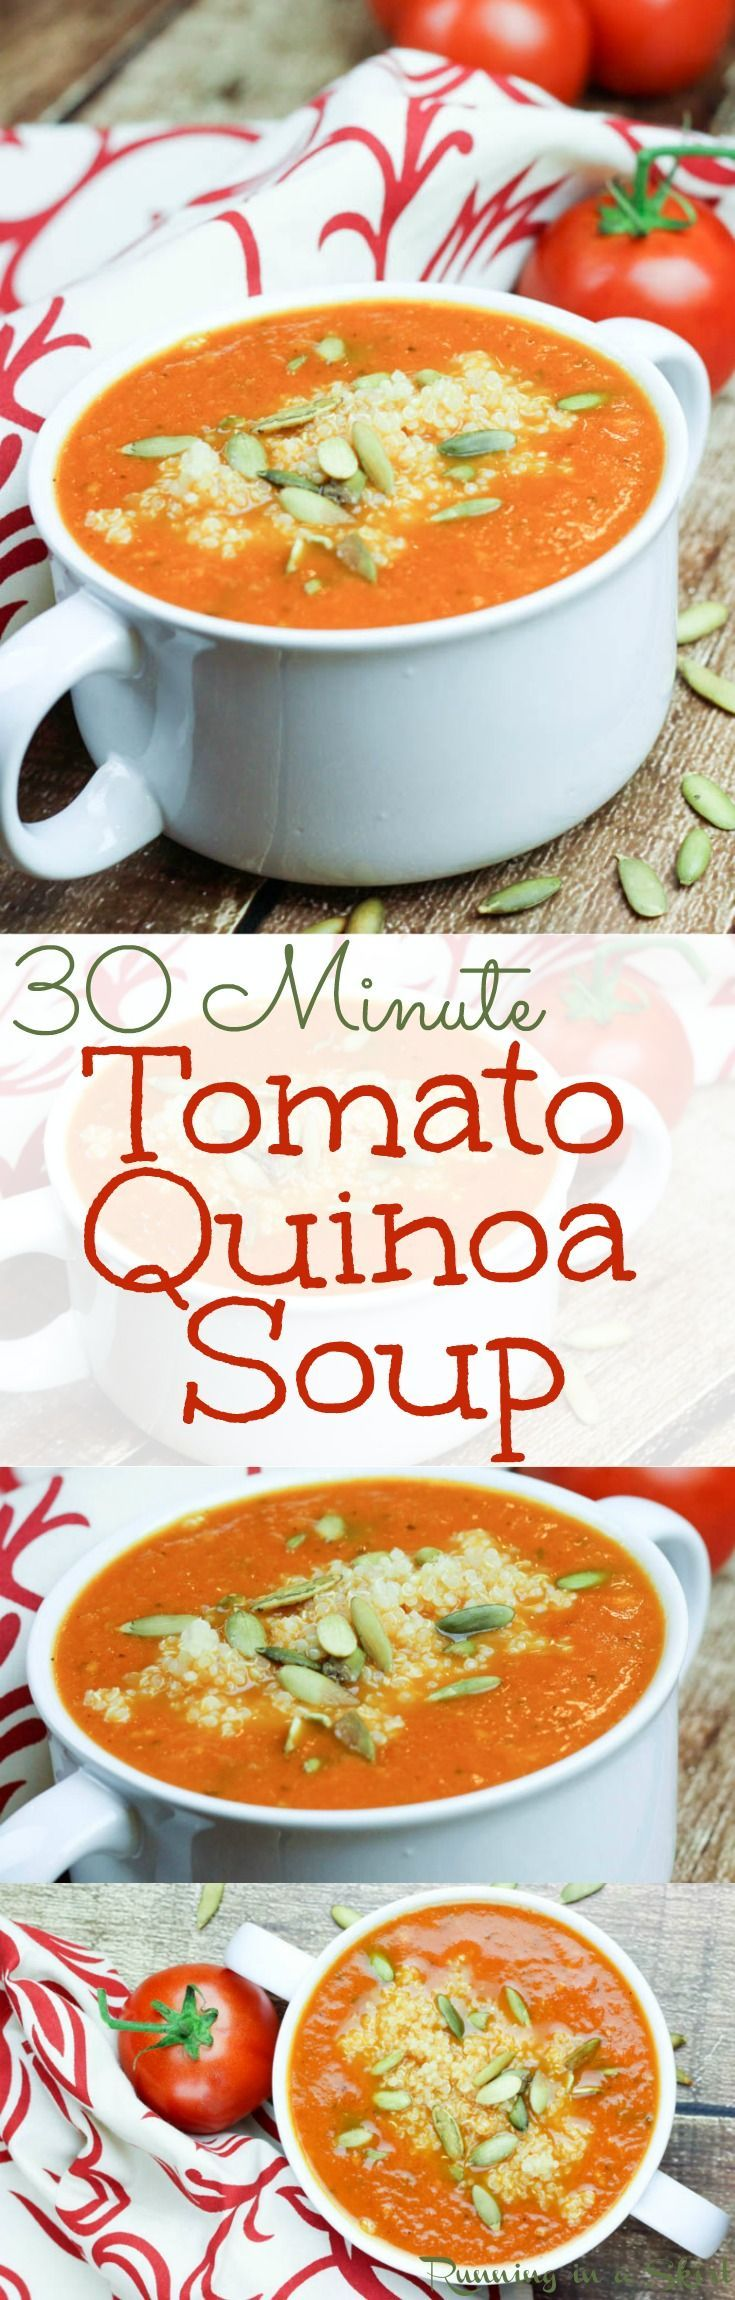 Tomato Quinoa Soup recipe. Vegan & Vegetarian. A simple meal on your table in less than 30 minutes! Quick, easy and healthy! Healthy comfort foods! | Running in a Skirt